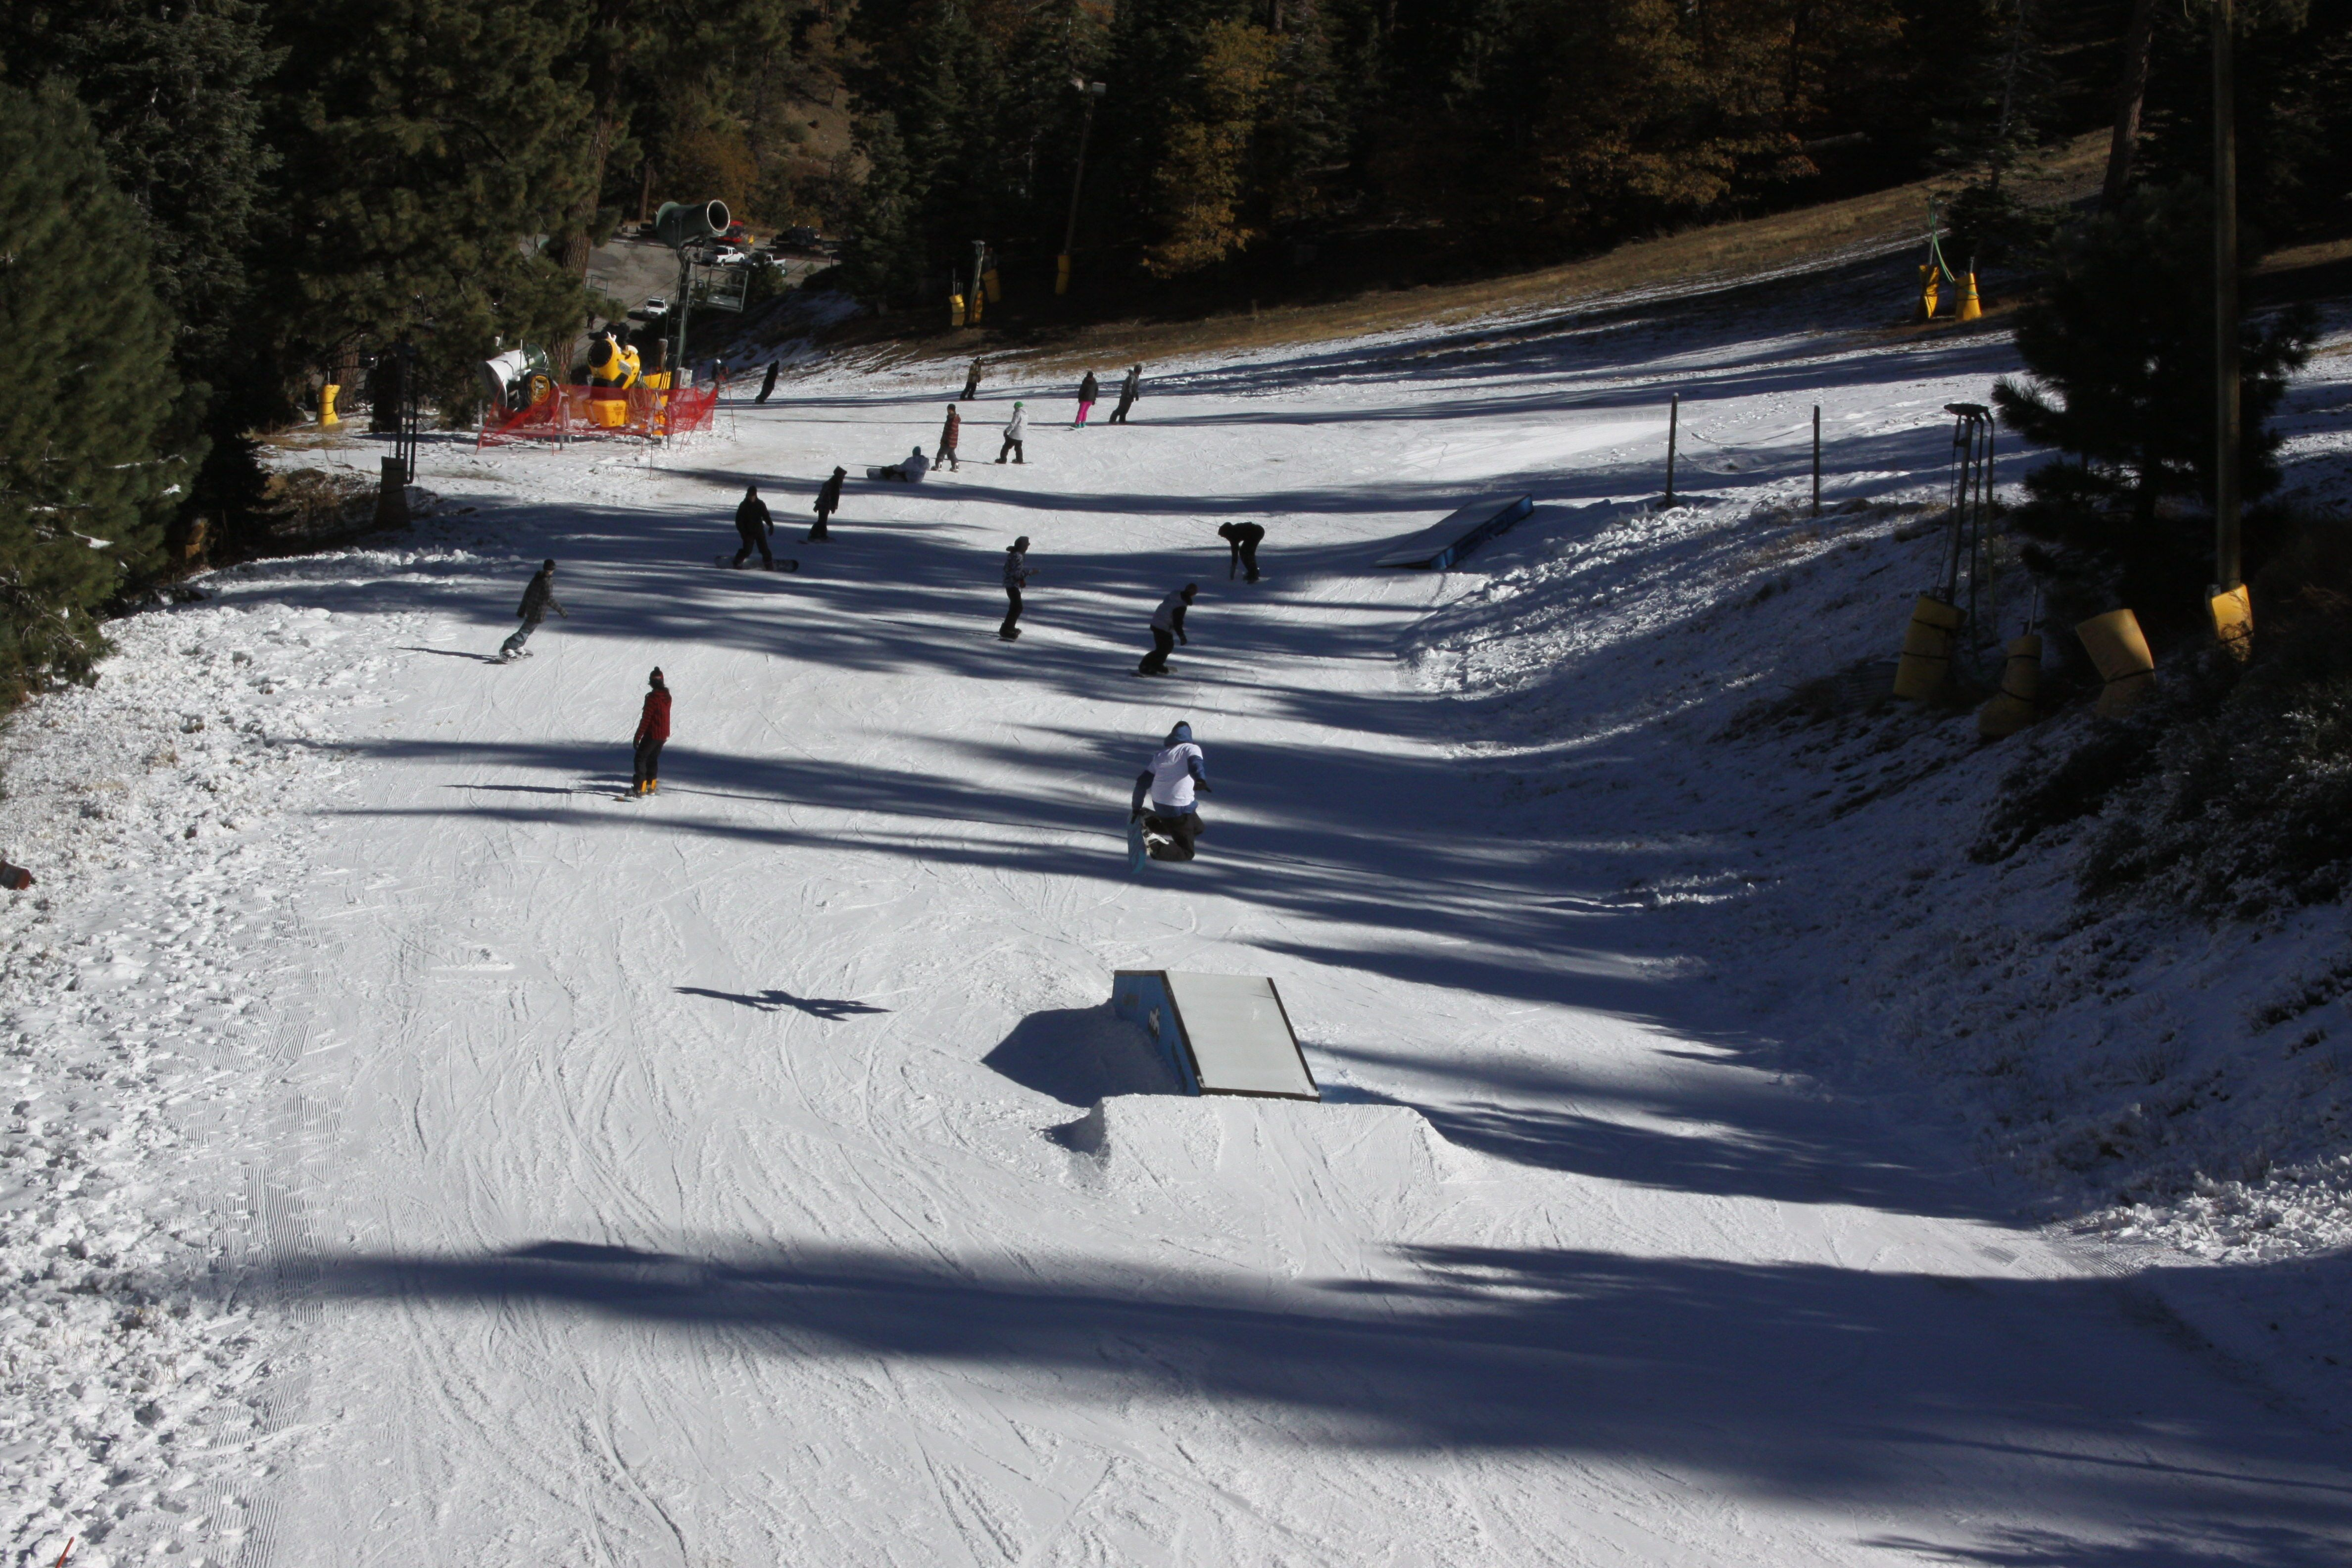 Southern California even got in on the act at Mountain High Resort in Wrightwood. (photo: Mountain High Resort)